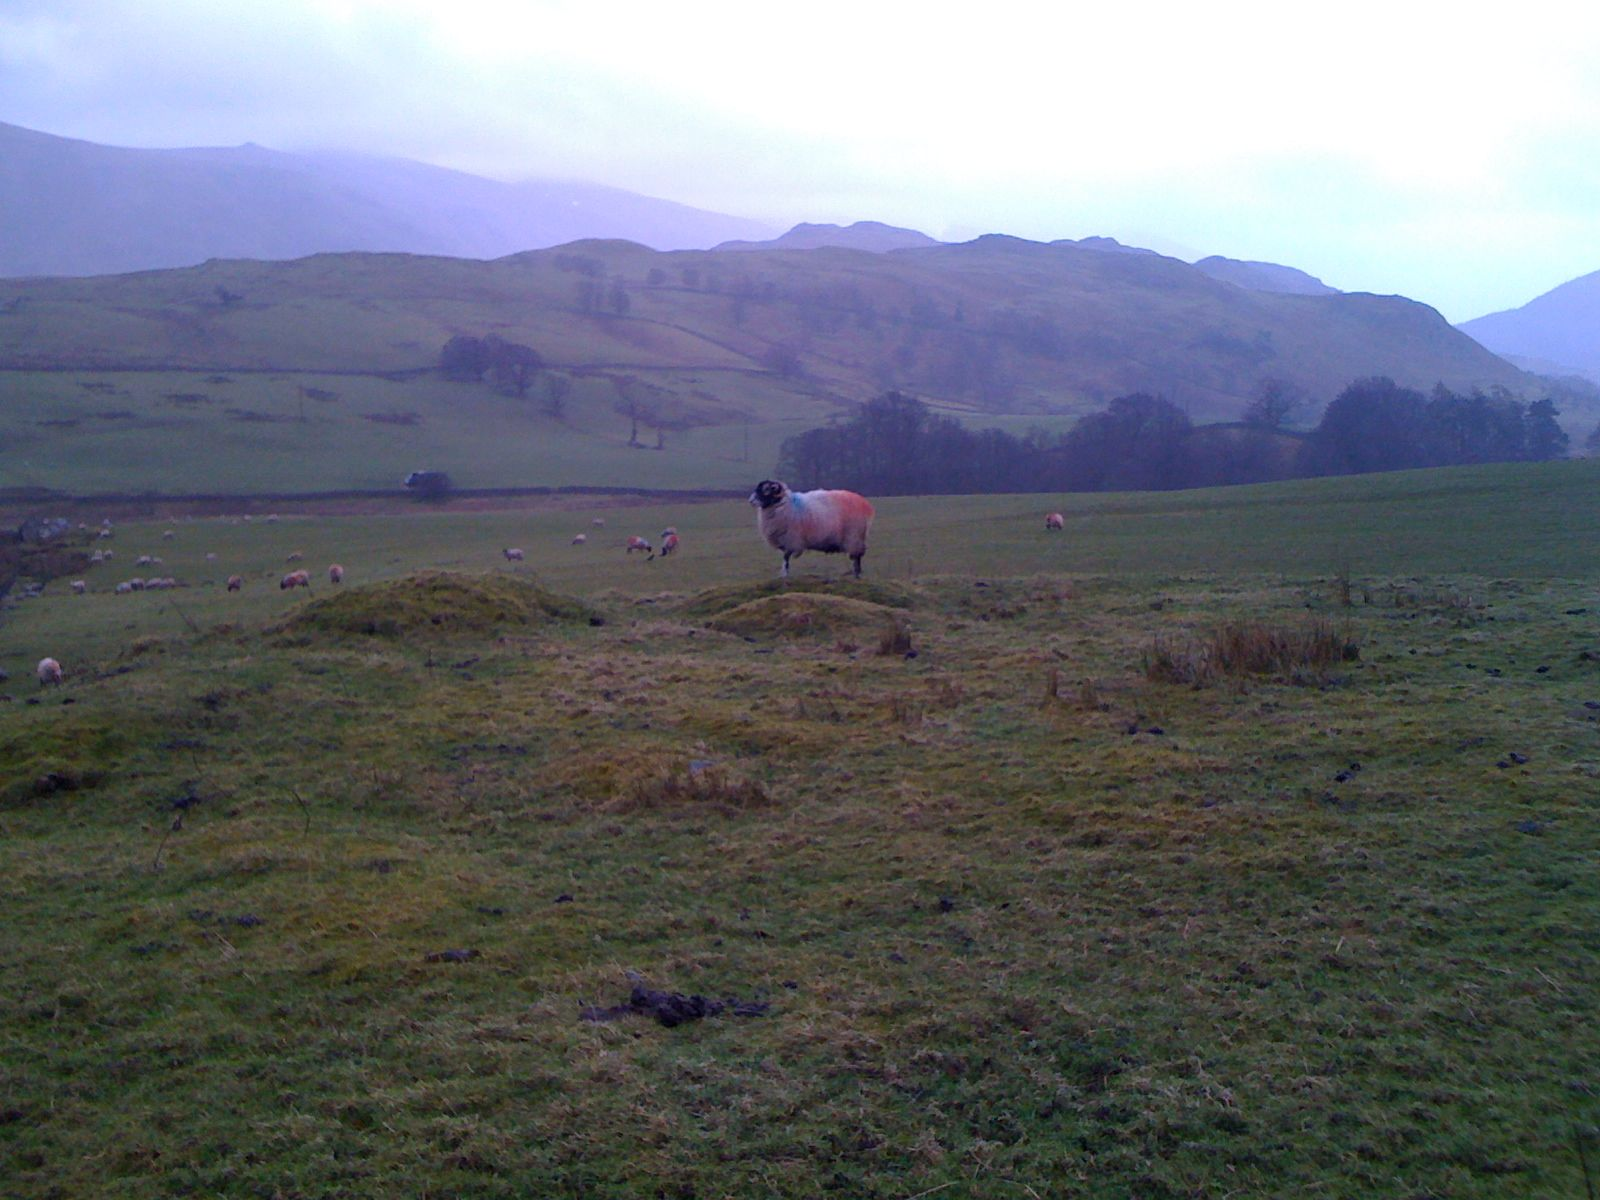 Vista of the Lake District National Park featuring a rather fashionable color-tagged sheep!